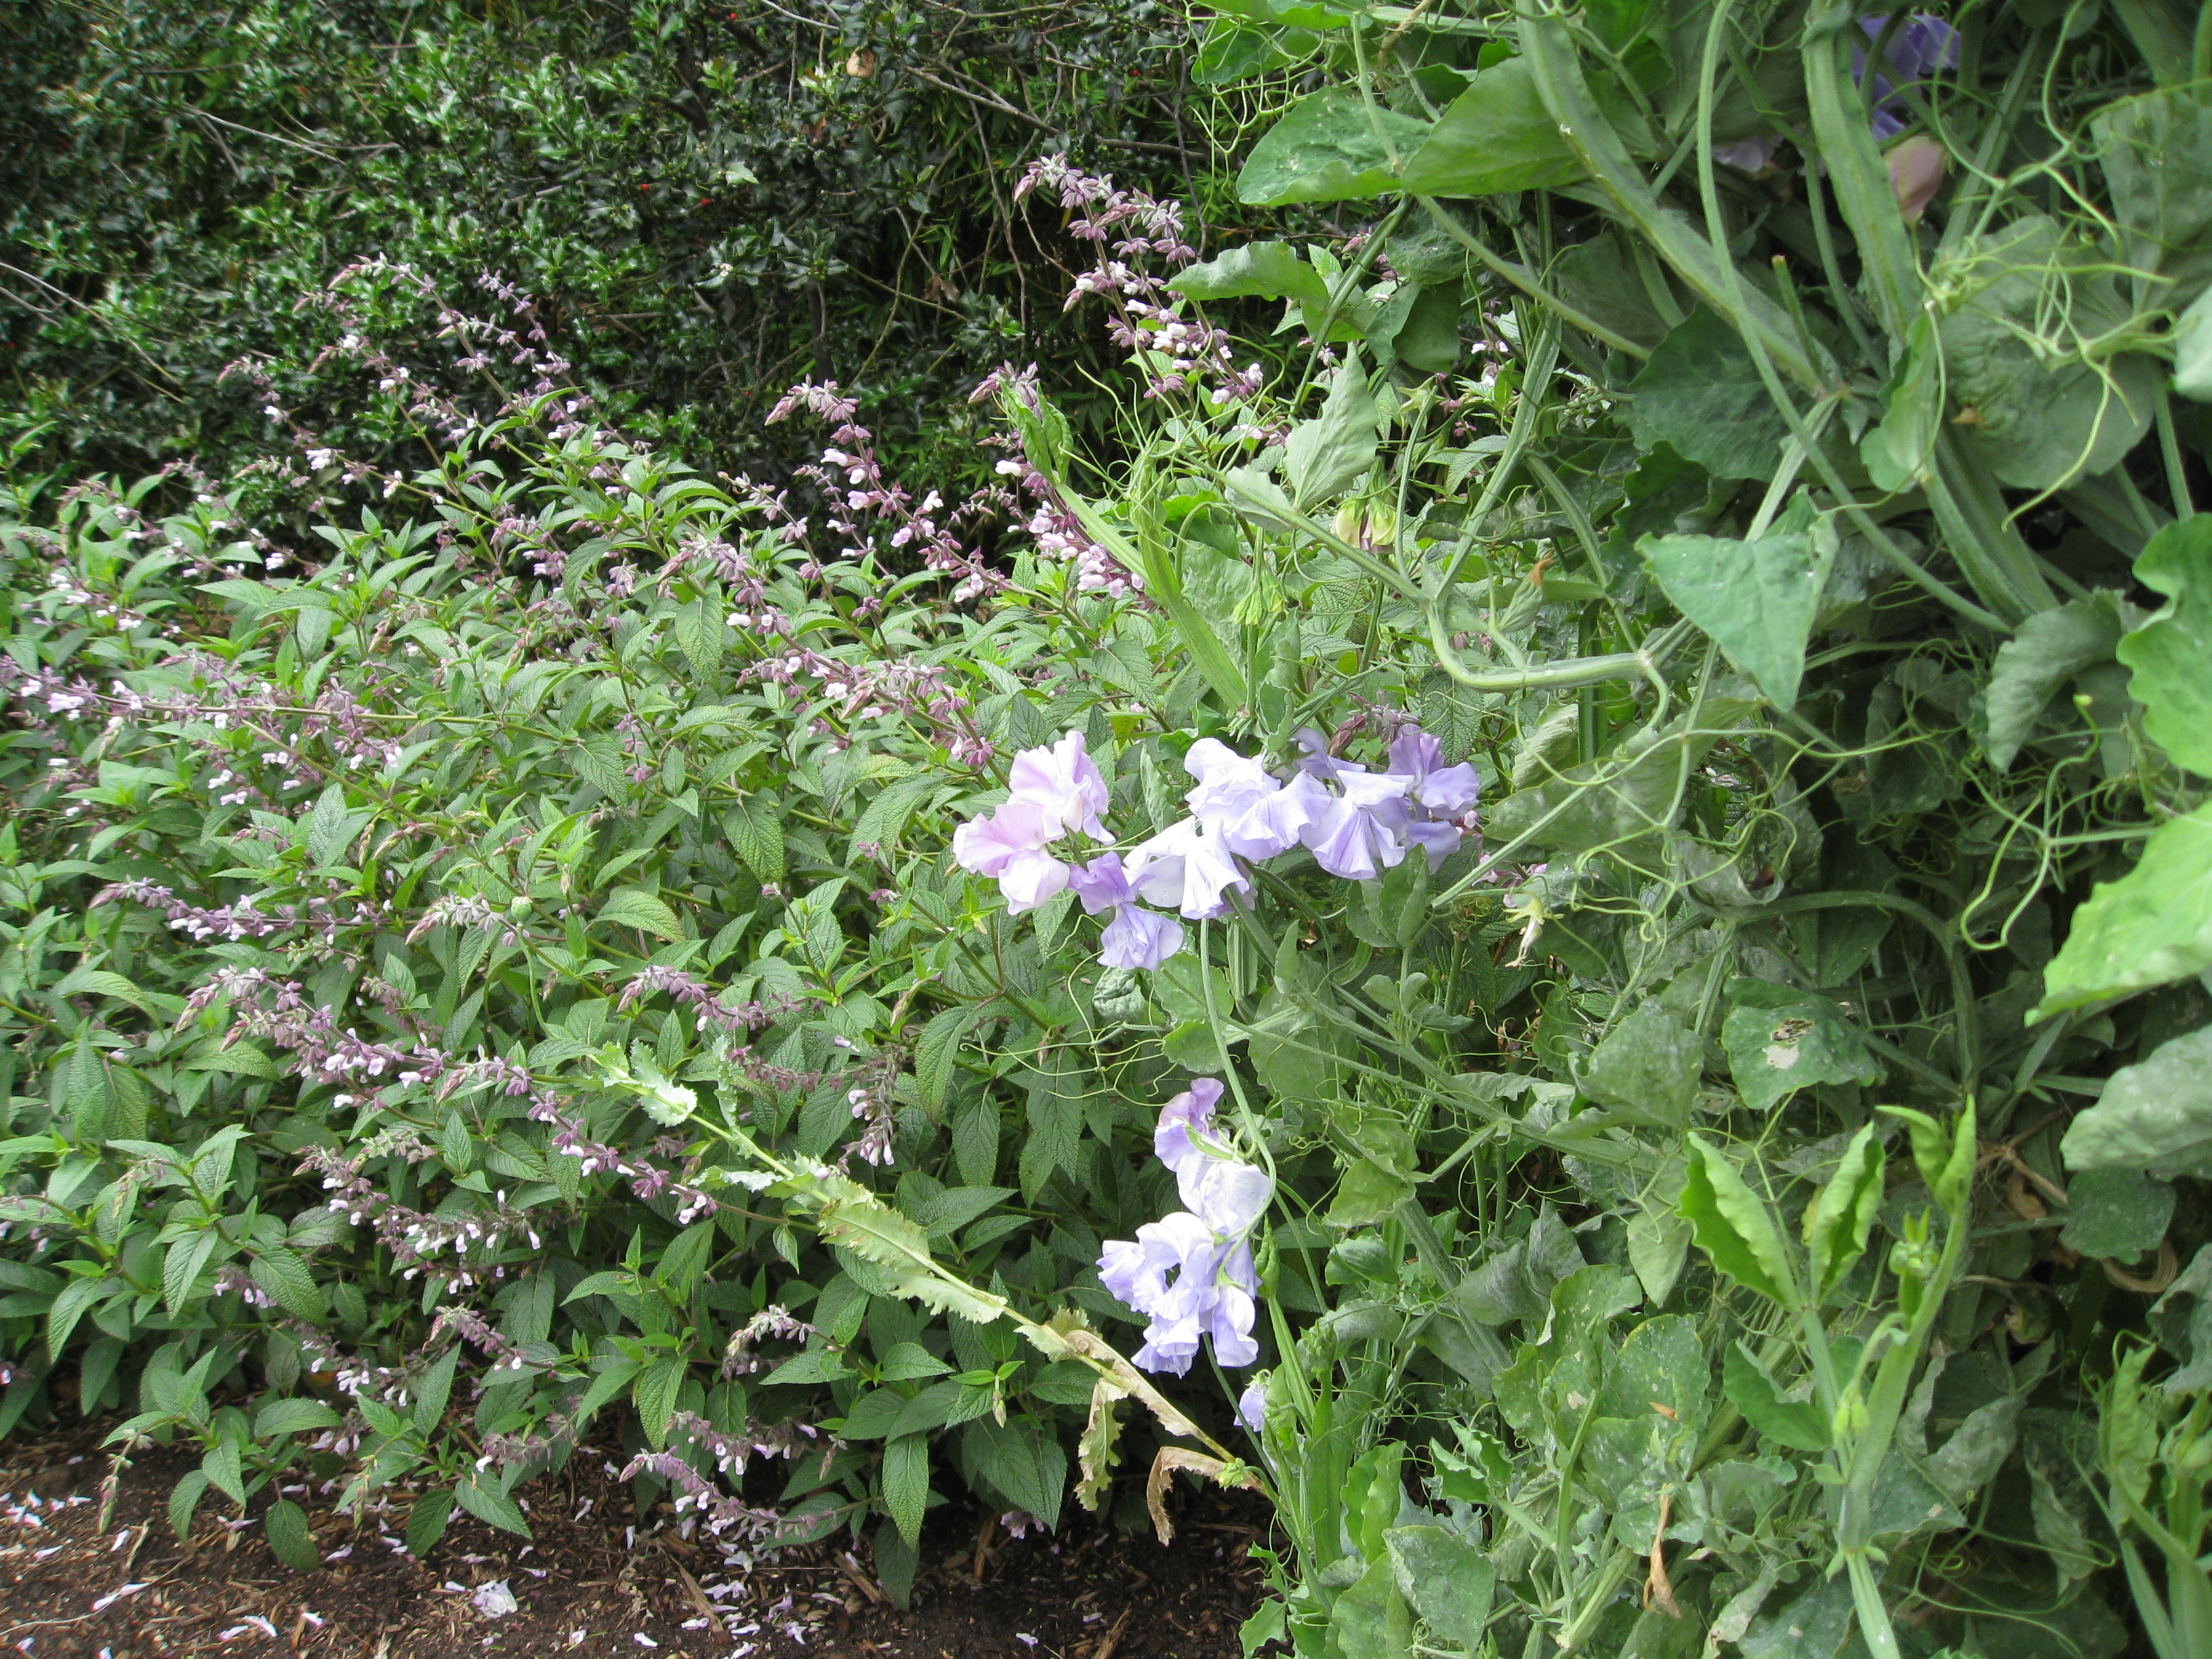 Salvia and sweet peas provide food for bees and other pollinators.